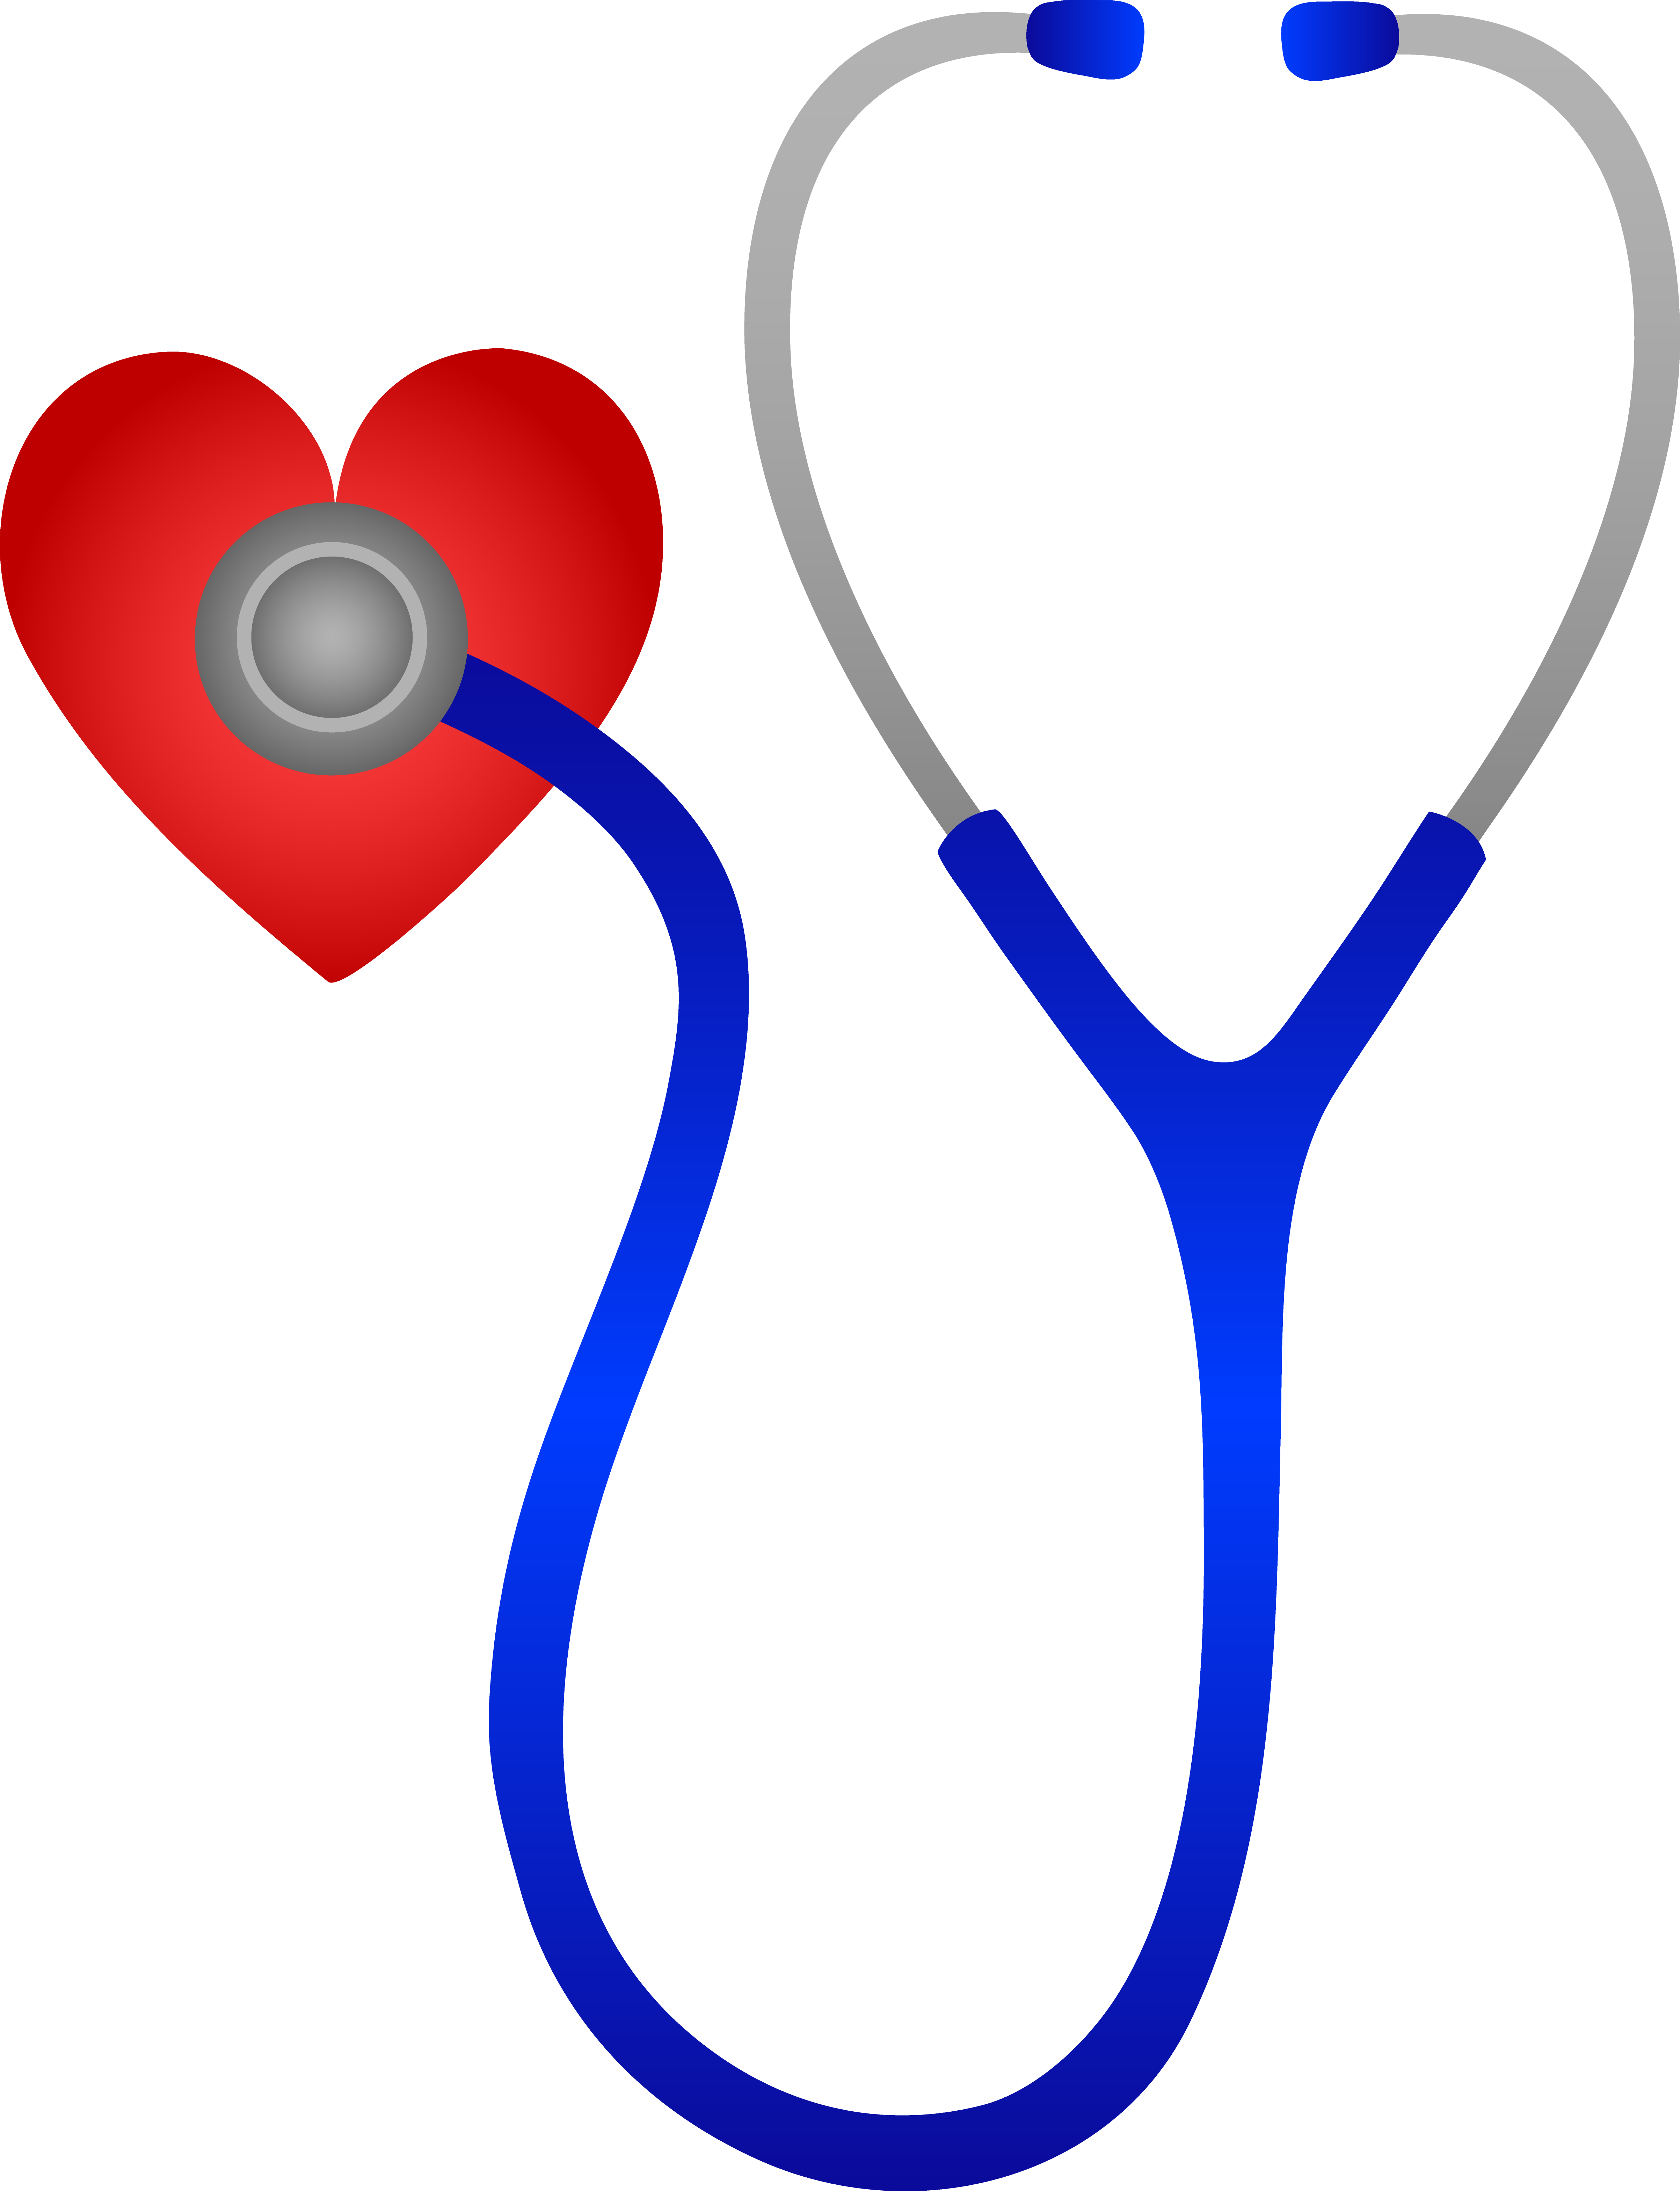 Stethoscope Listening to Heart Beat - Free Clip Art